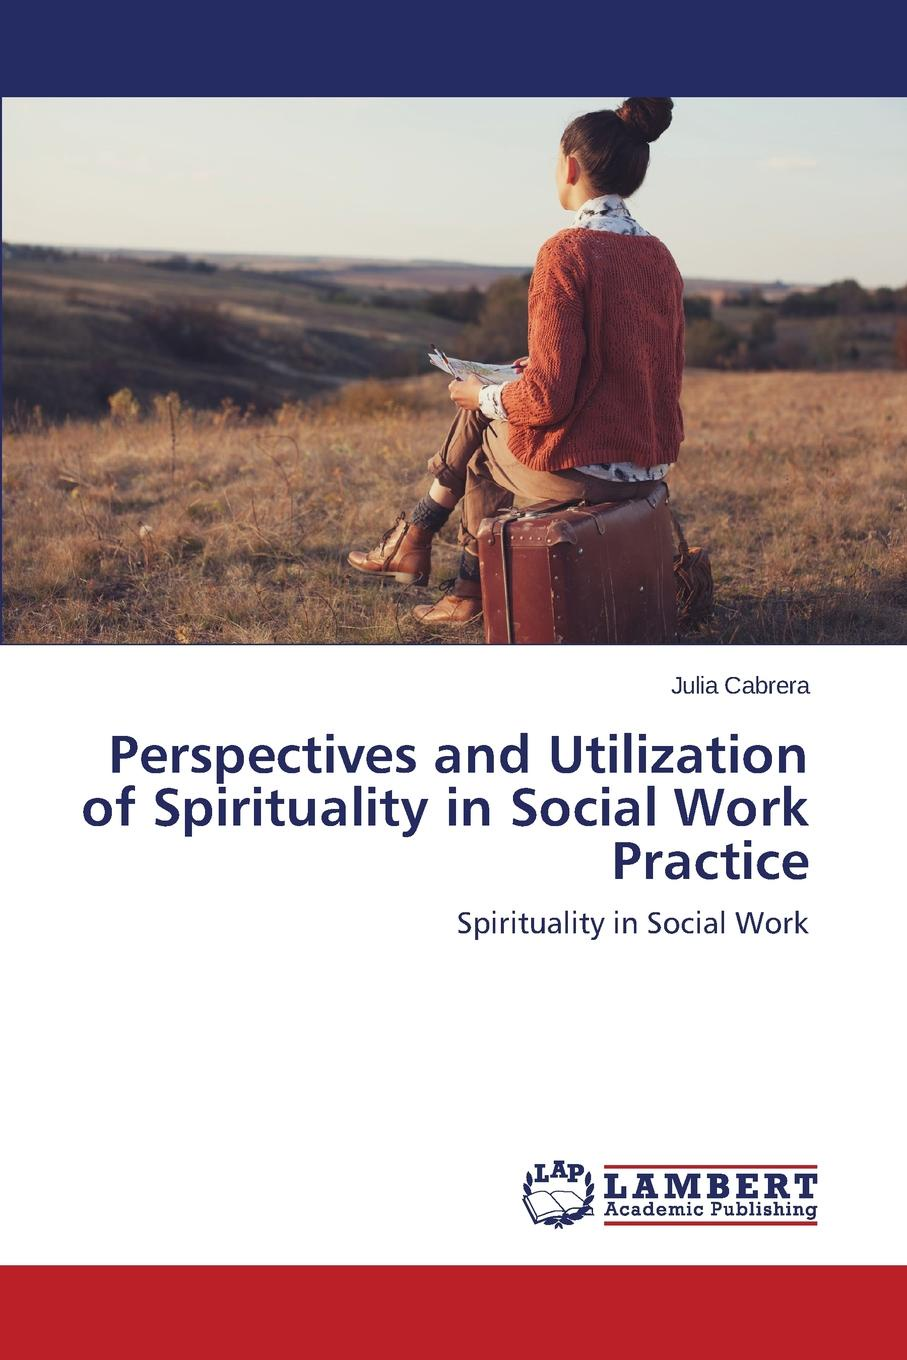 Cabrera Julia Perspectives and Utilization of Spirituality in Social Work Practice harris beider race housing and community perspectives on policy and practice